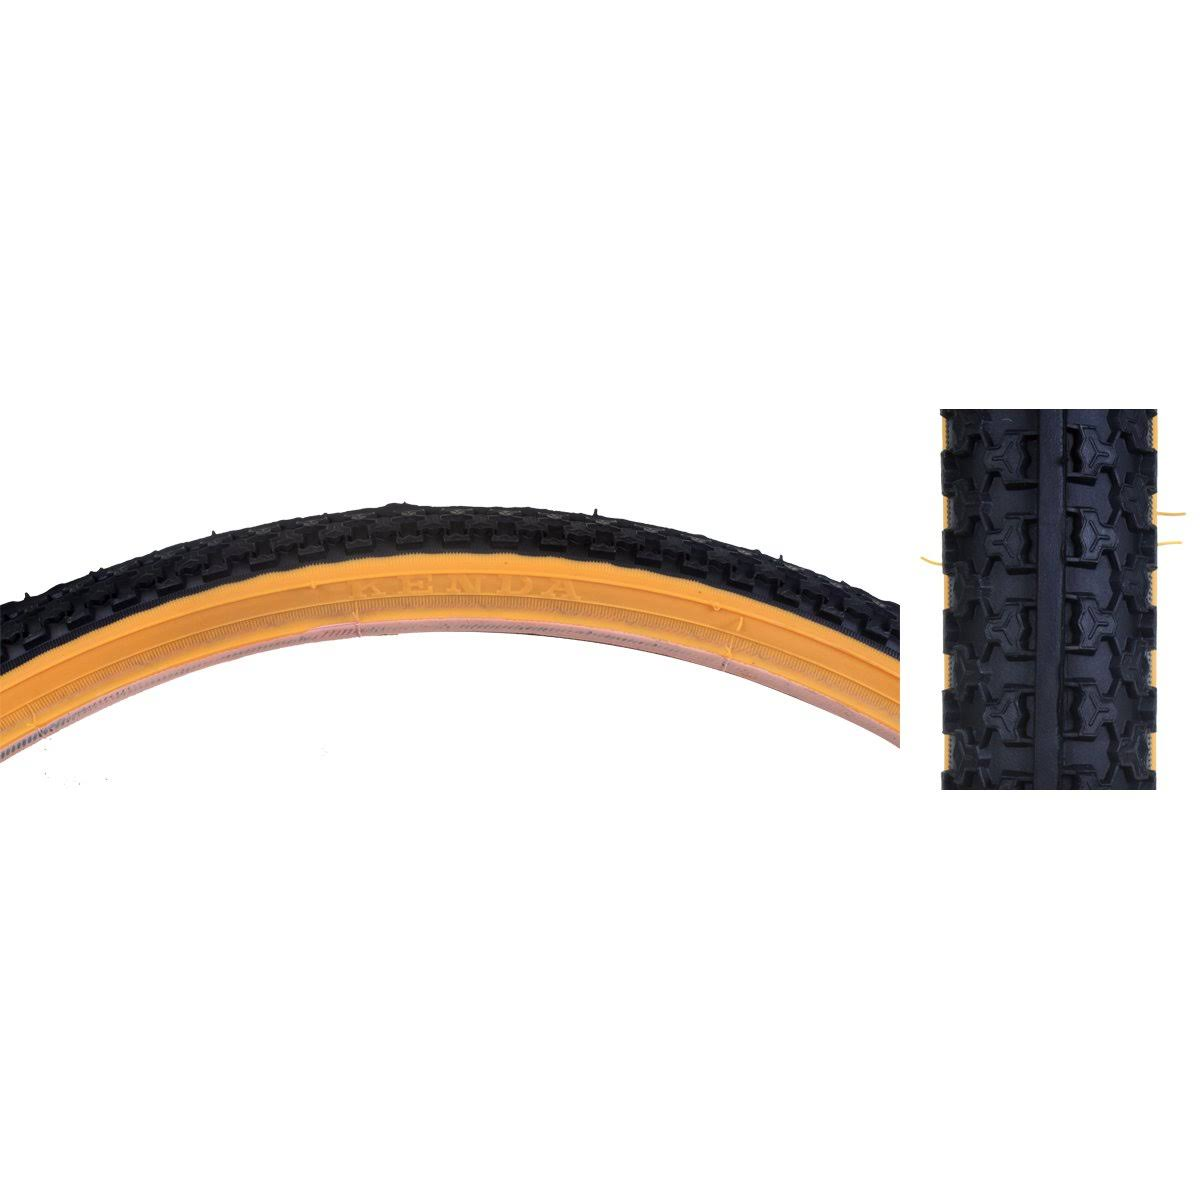 "Sunlite MTB Raised Center Tire - Black/Black, 26"" x 1.5"""